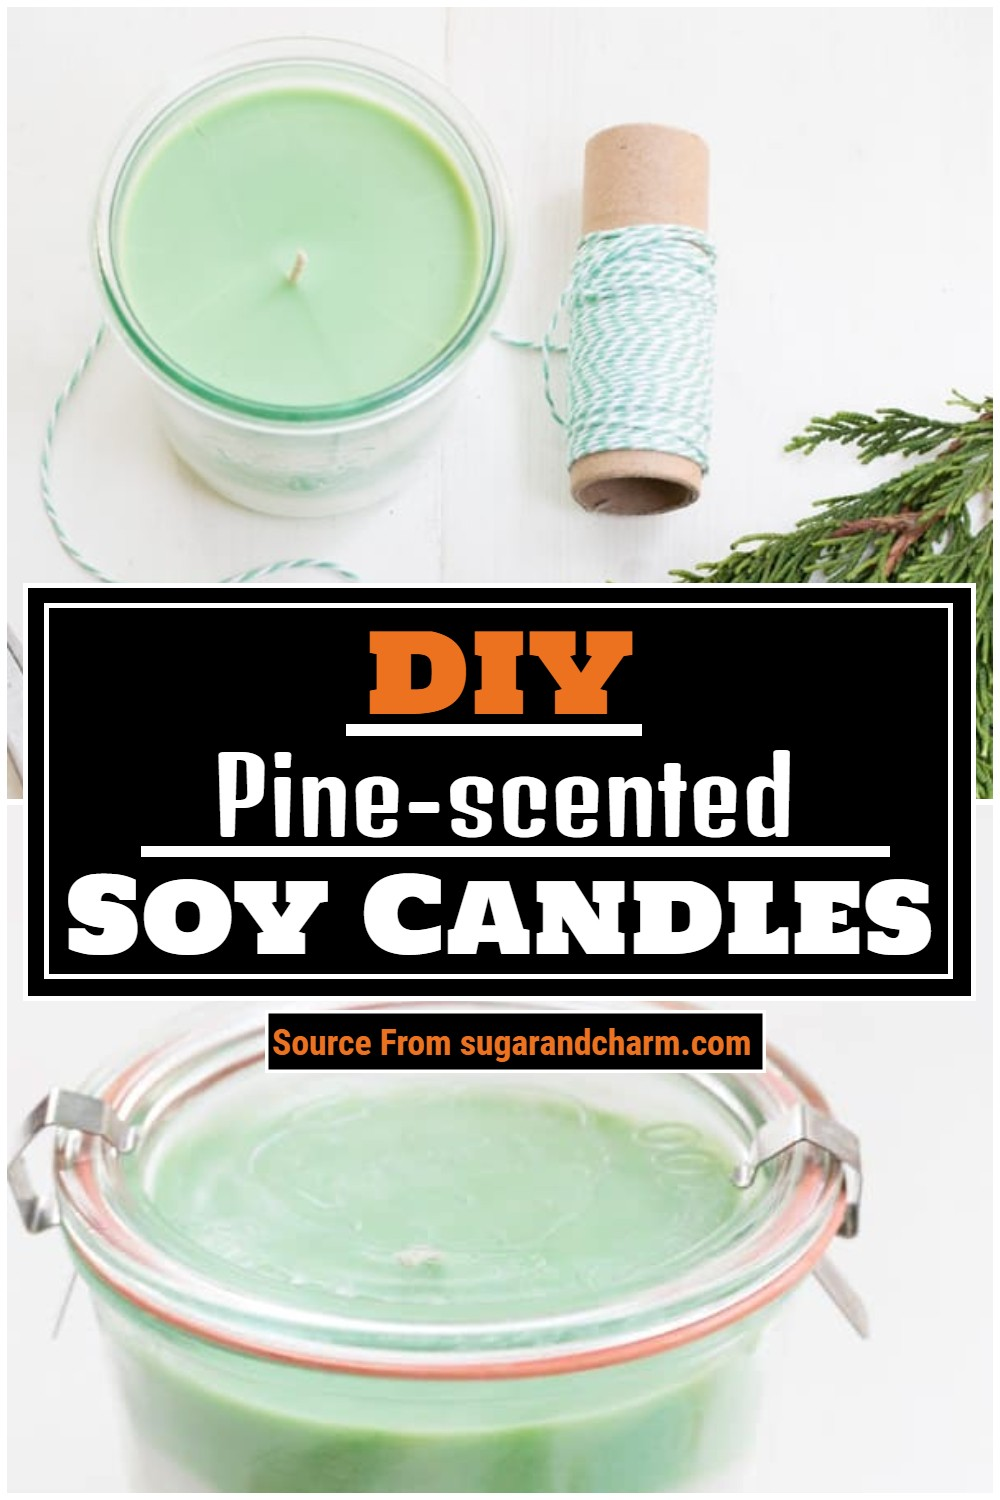 DIY Pine-scented Soy Candles